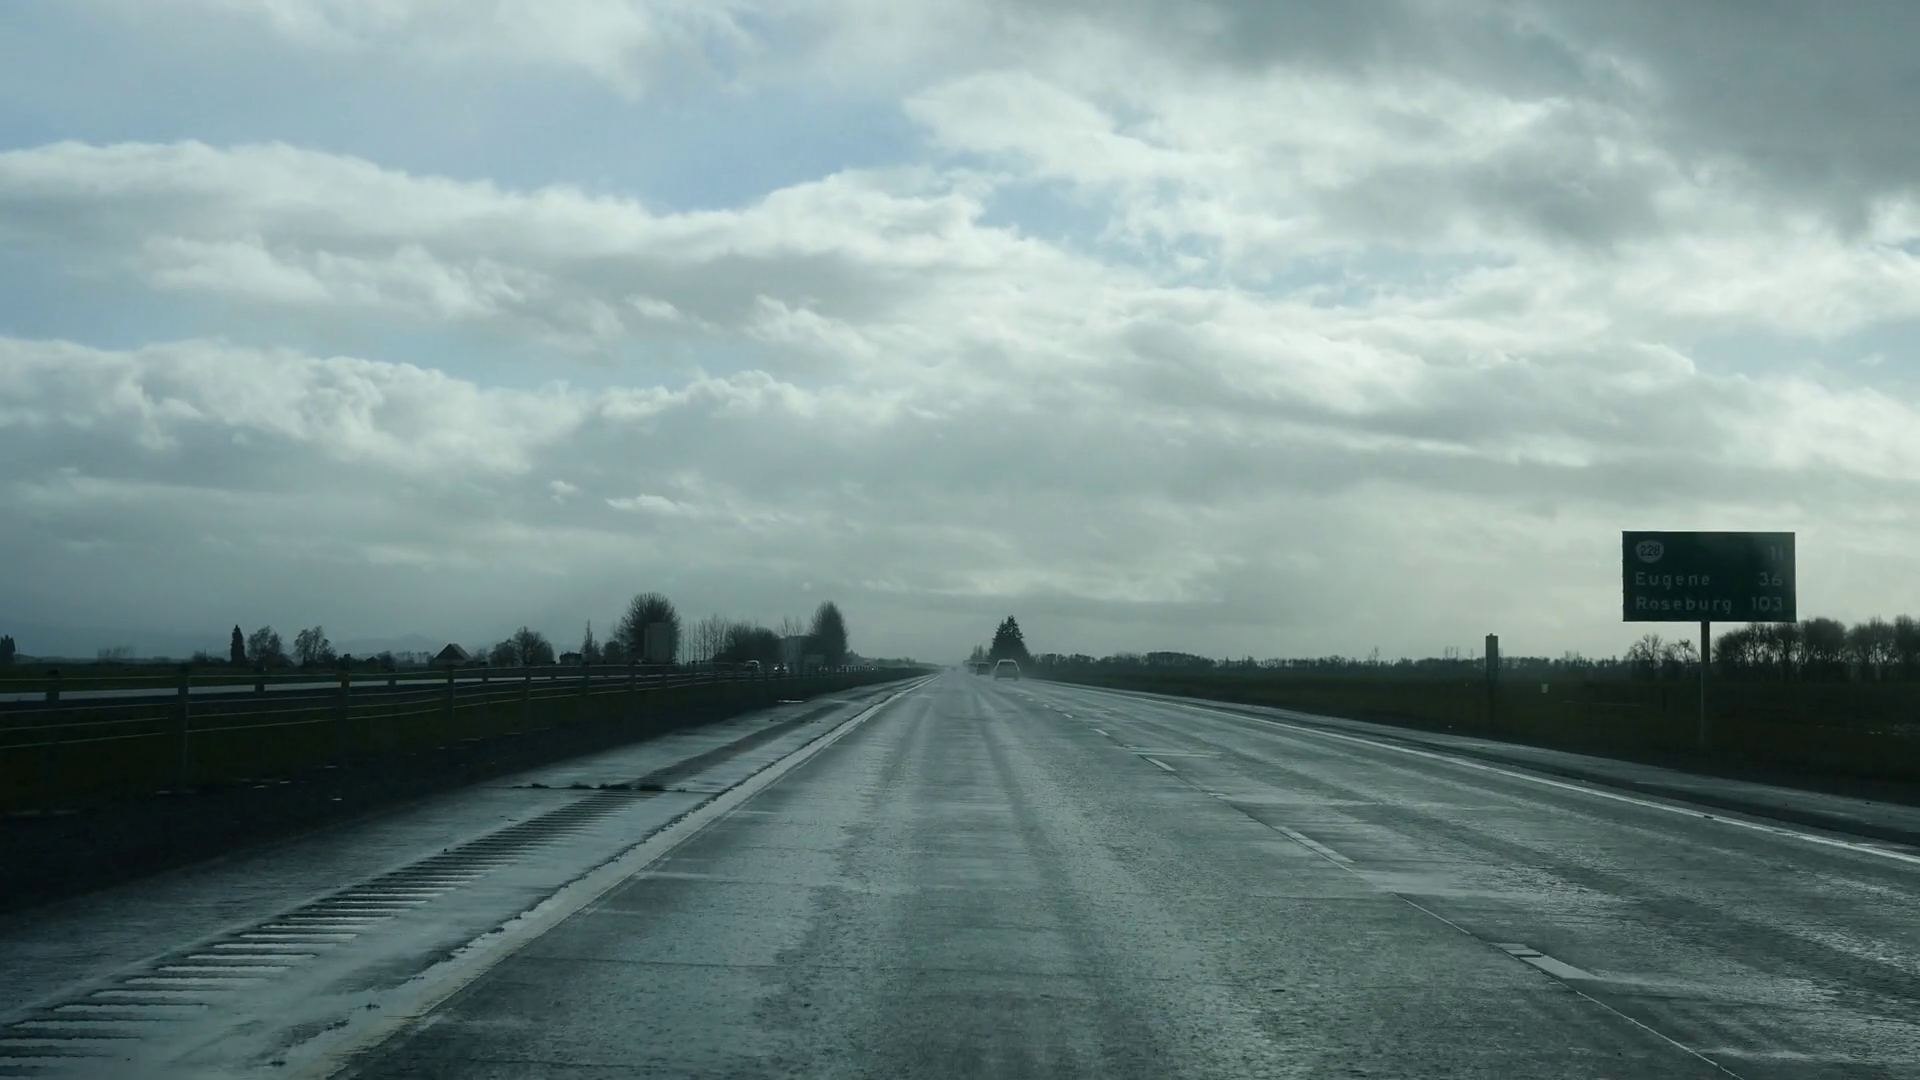 Oregon Highway In Cloudy Weather Stock Video Footage - VideoBlocks